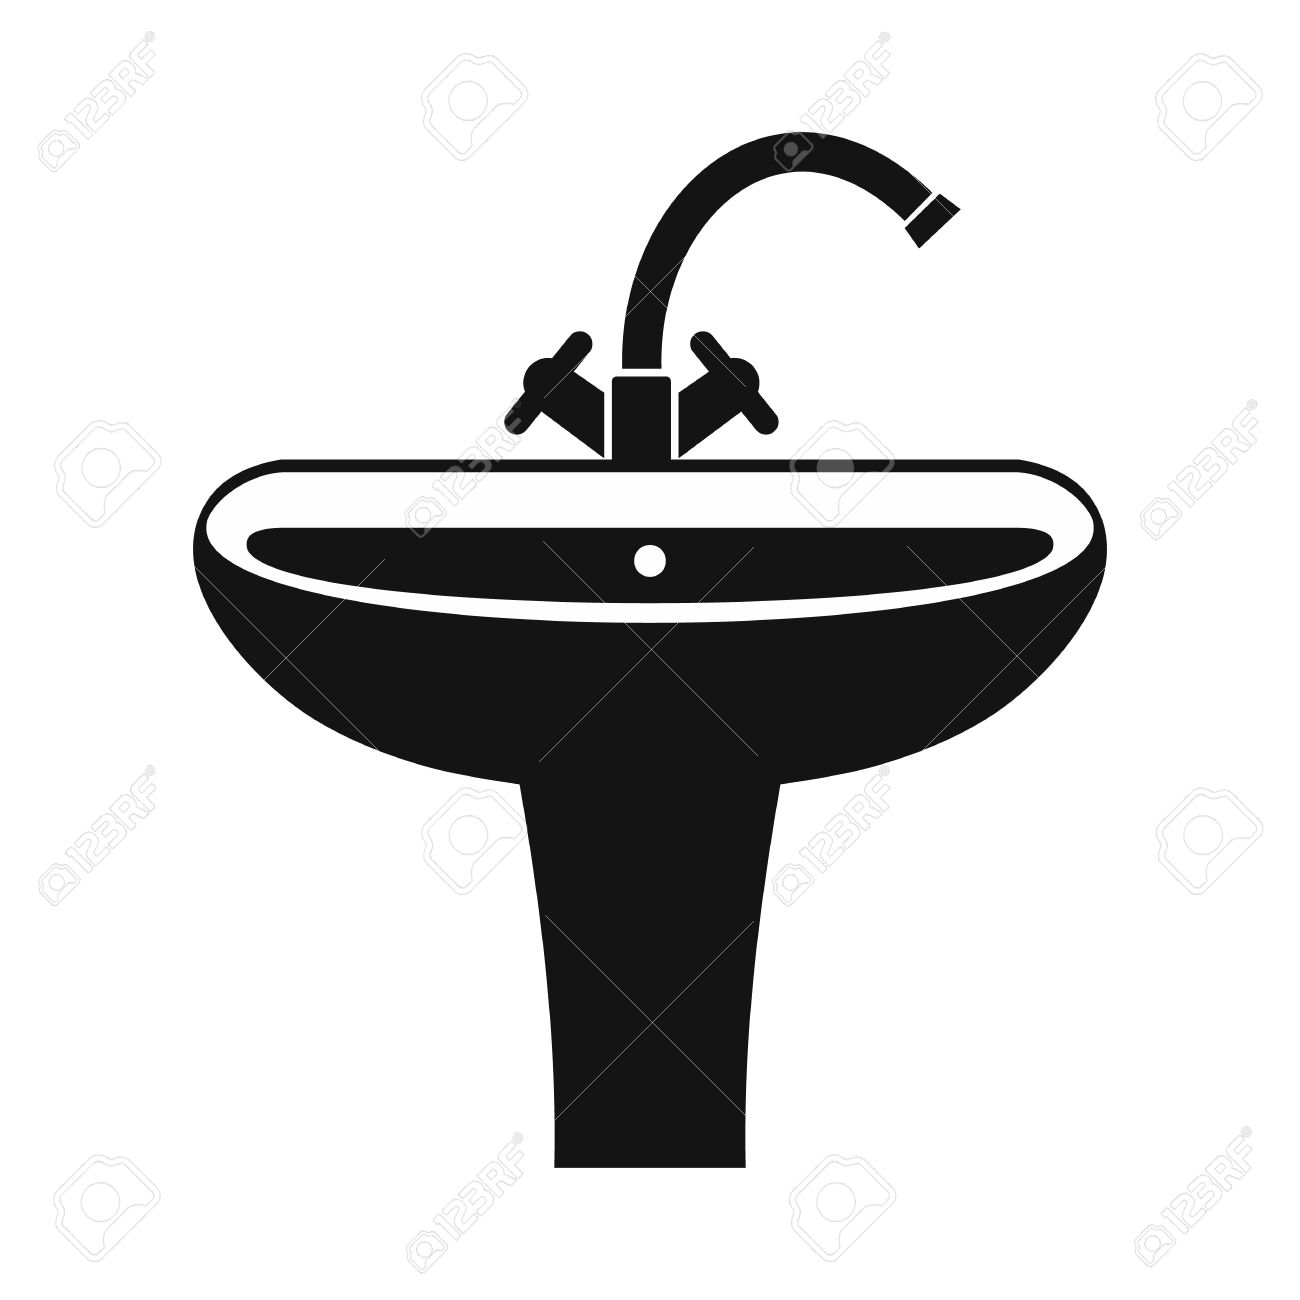 Wash Bowl Clipart Clipground